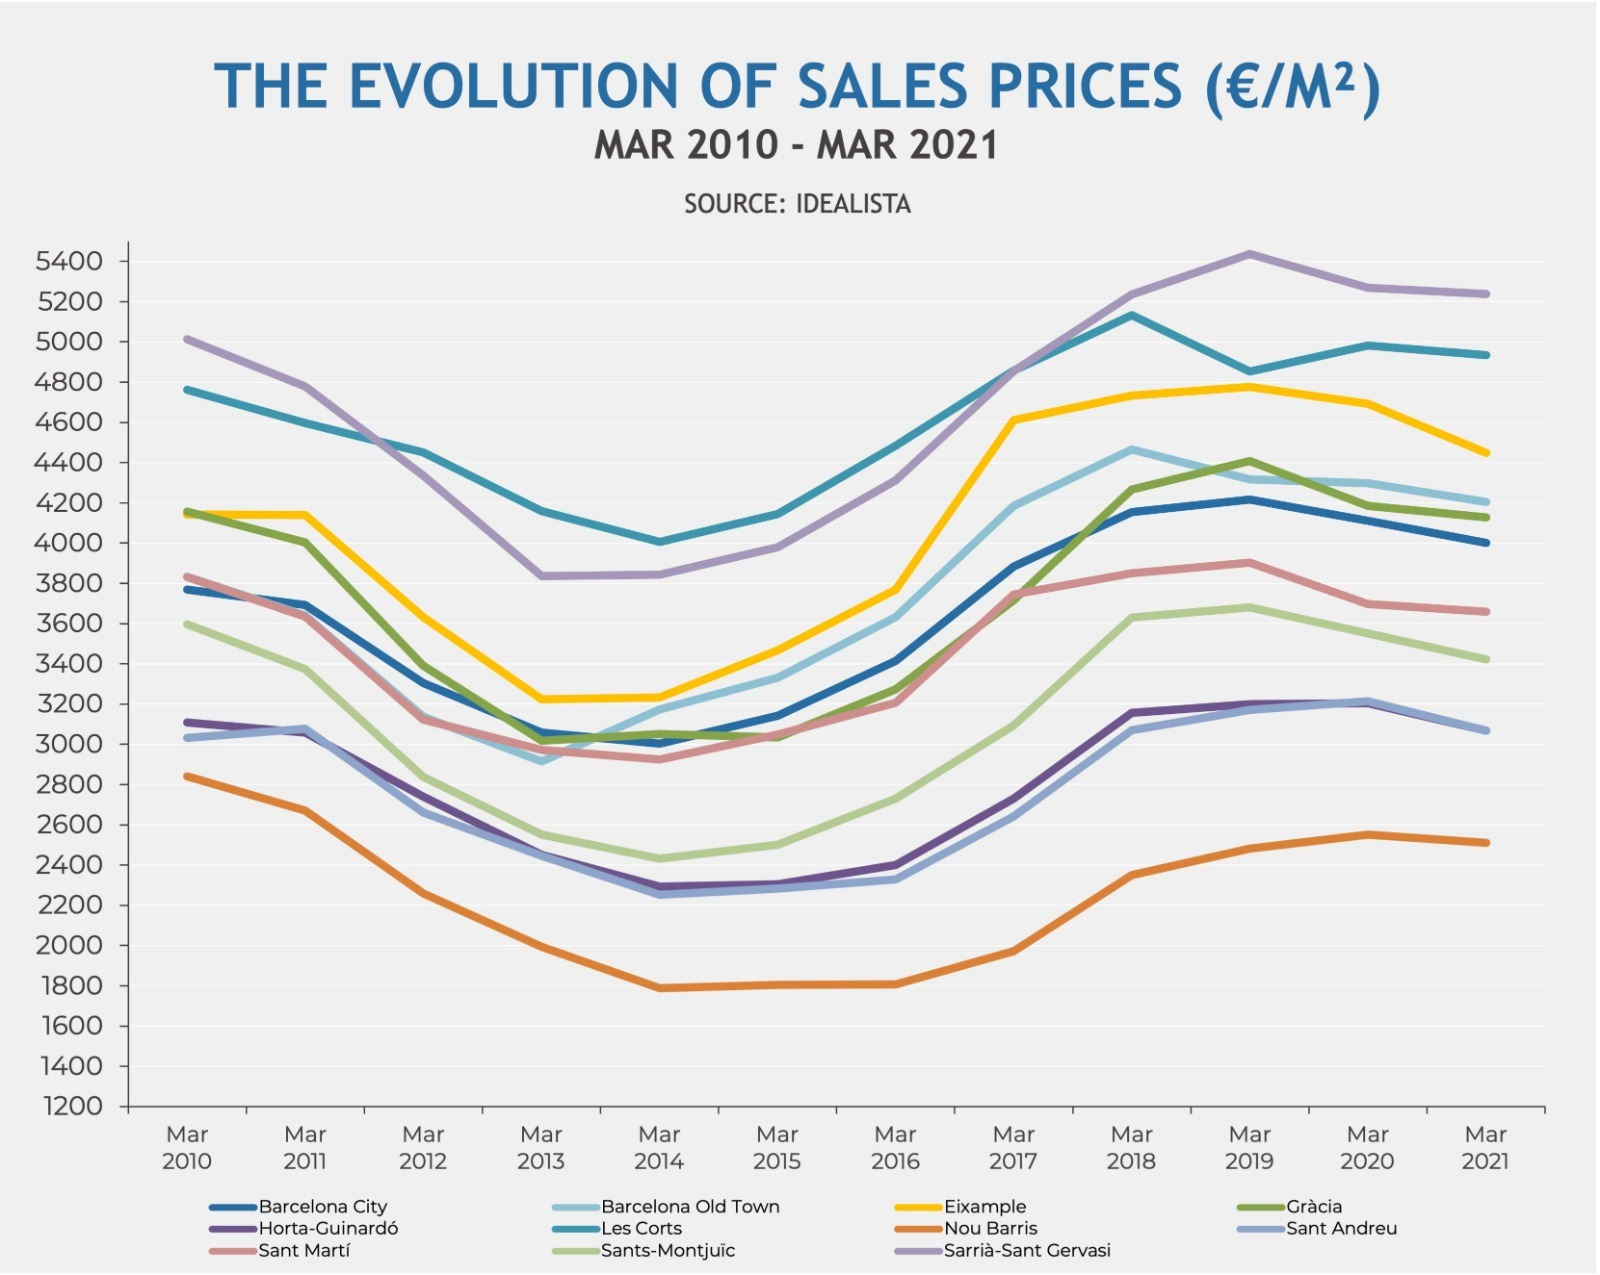 The evolution of sales prices in Barcelona